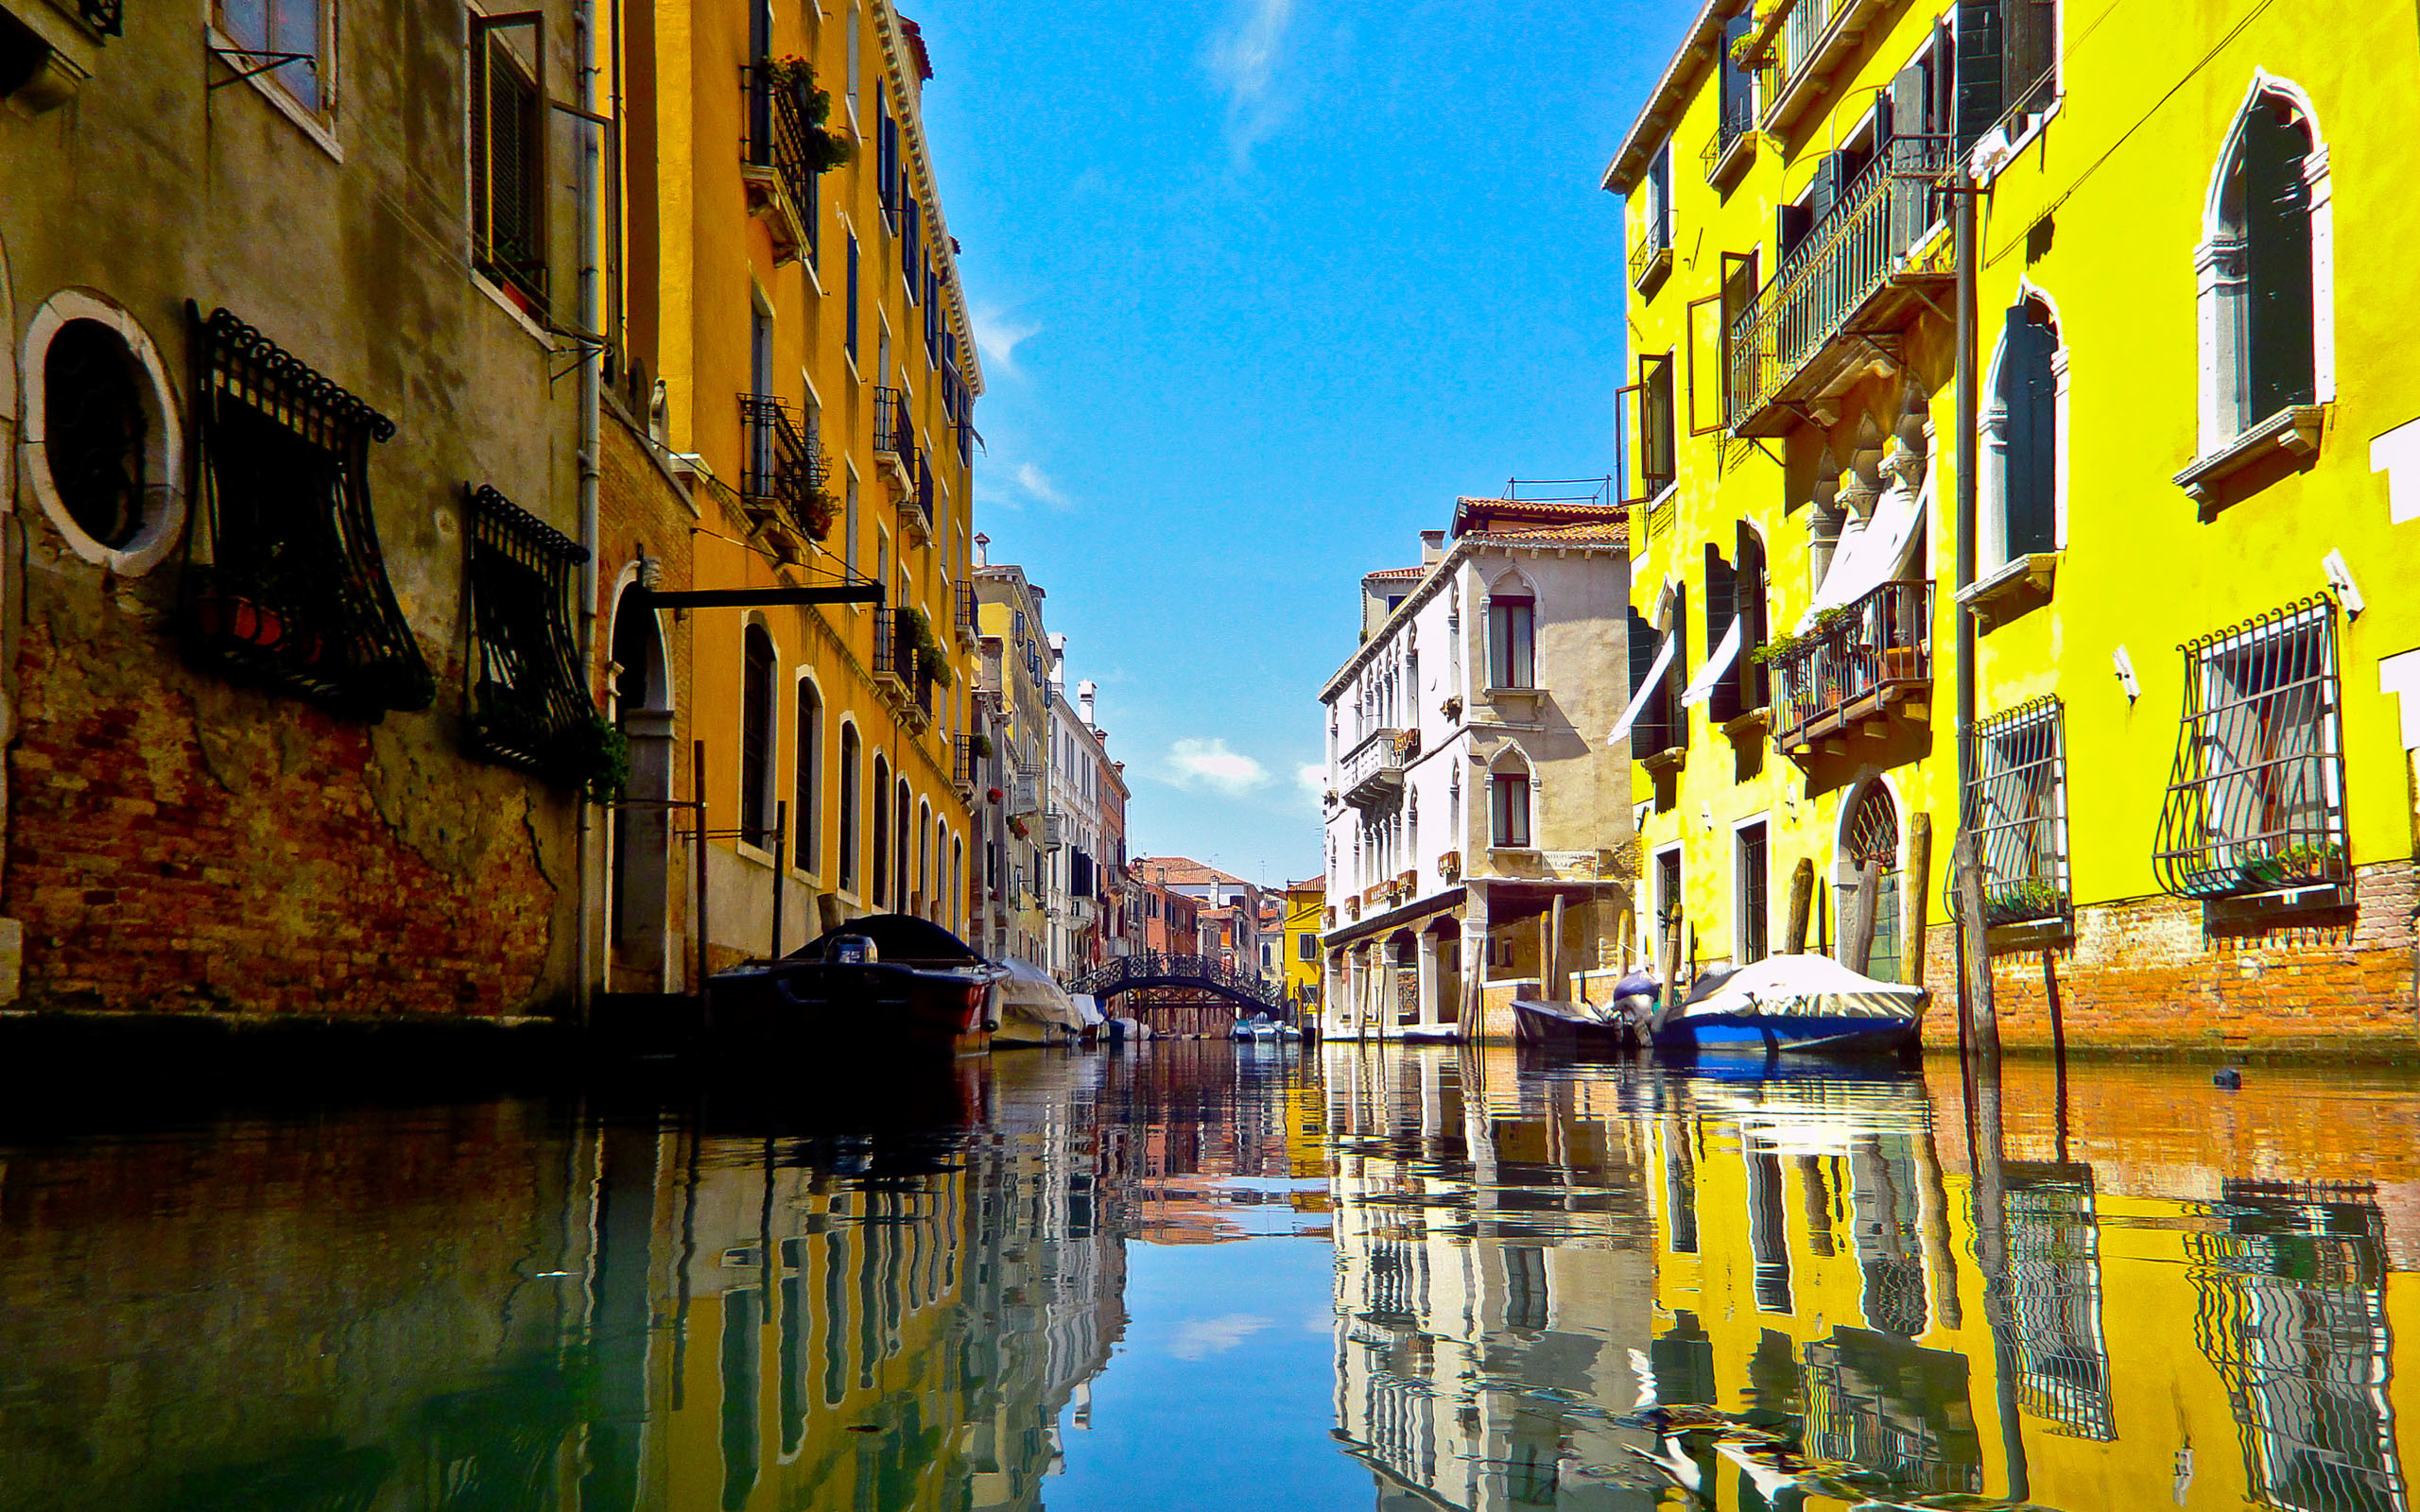 2560x1600 ... Download Wallpaper 3840x2160 Italy, Venice, River, House, Dock 4K .